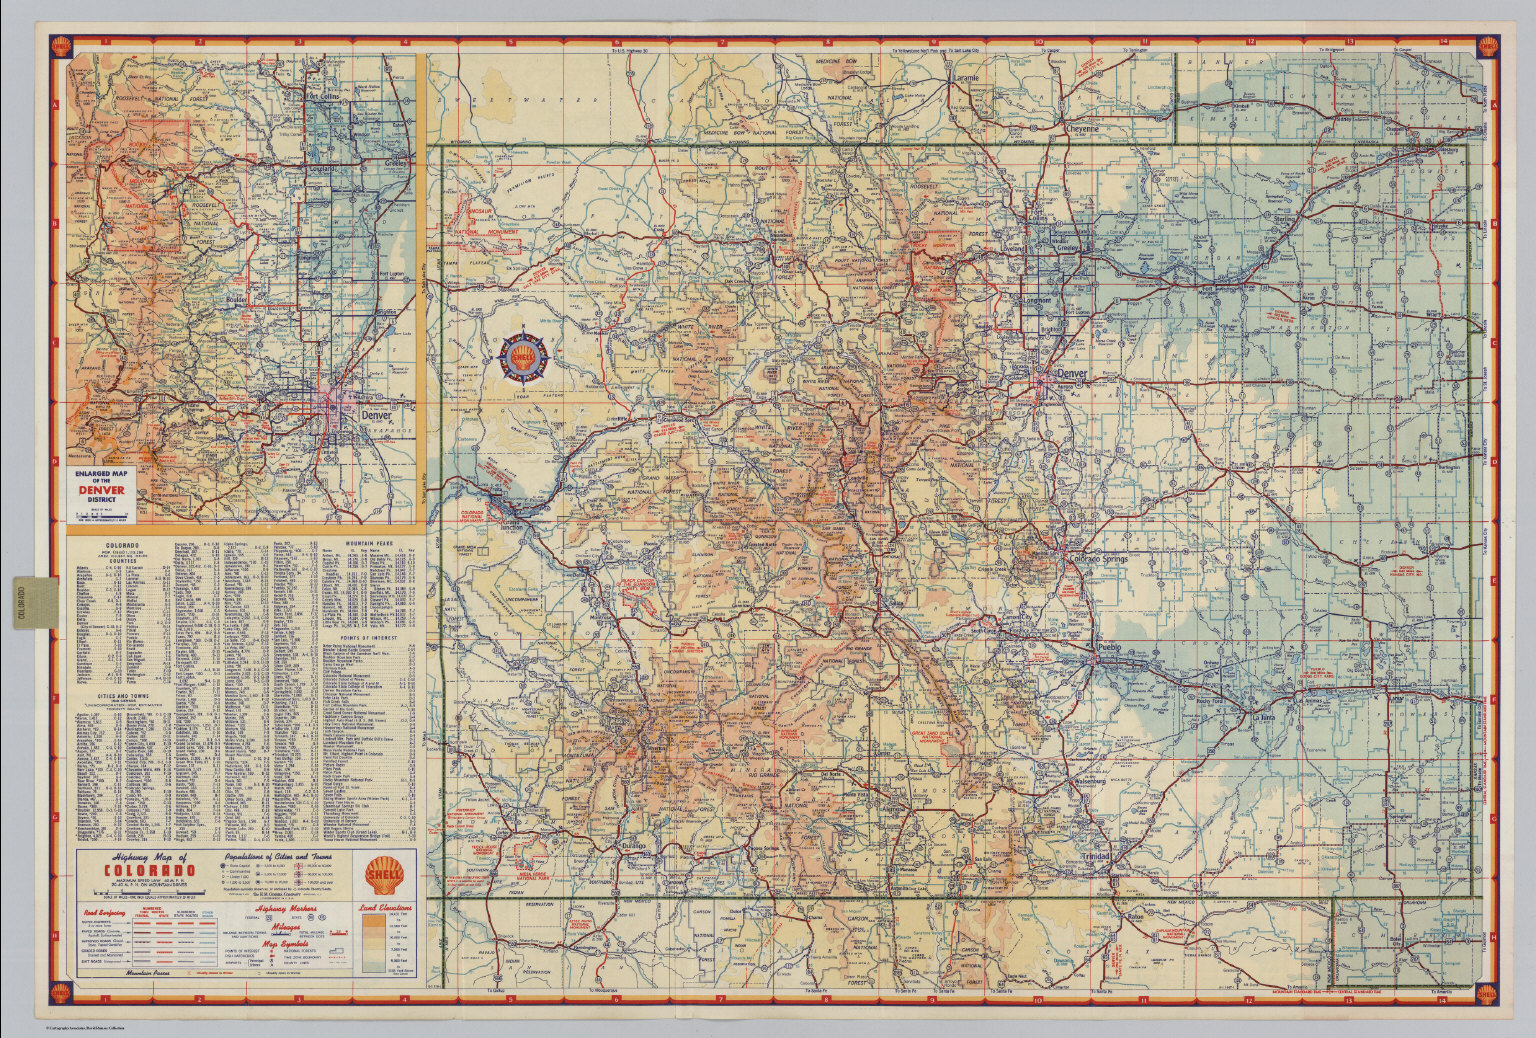 Shell Highway Map Of Colorado David Rumsey Historical Map - Coloradomap